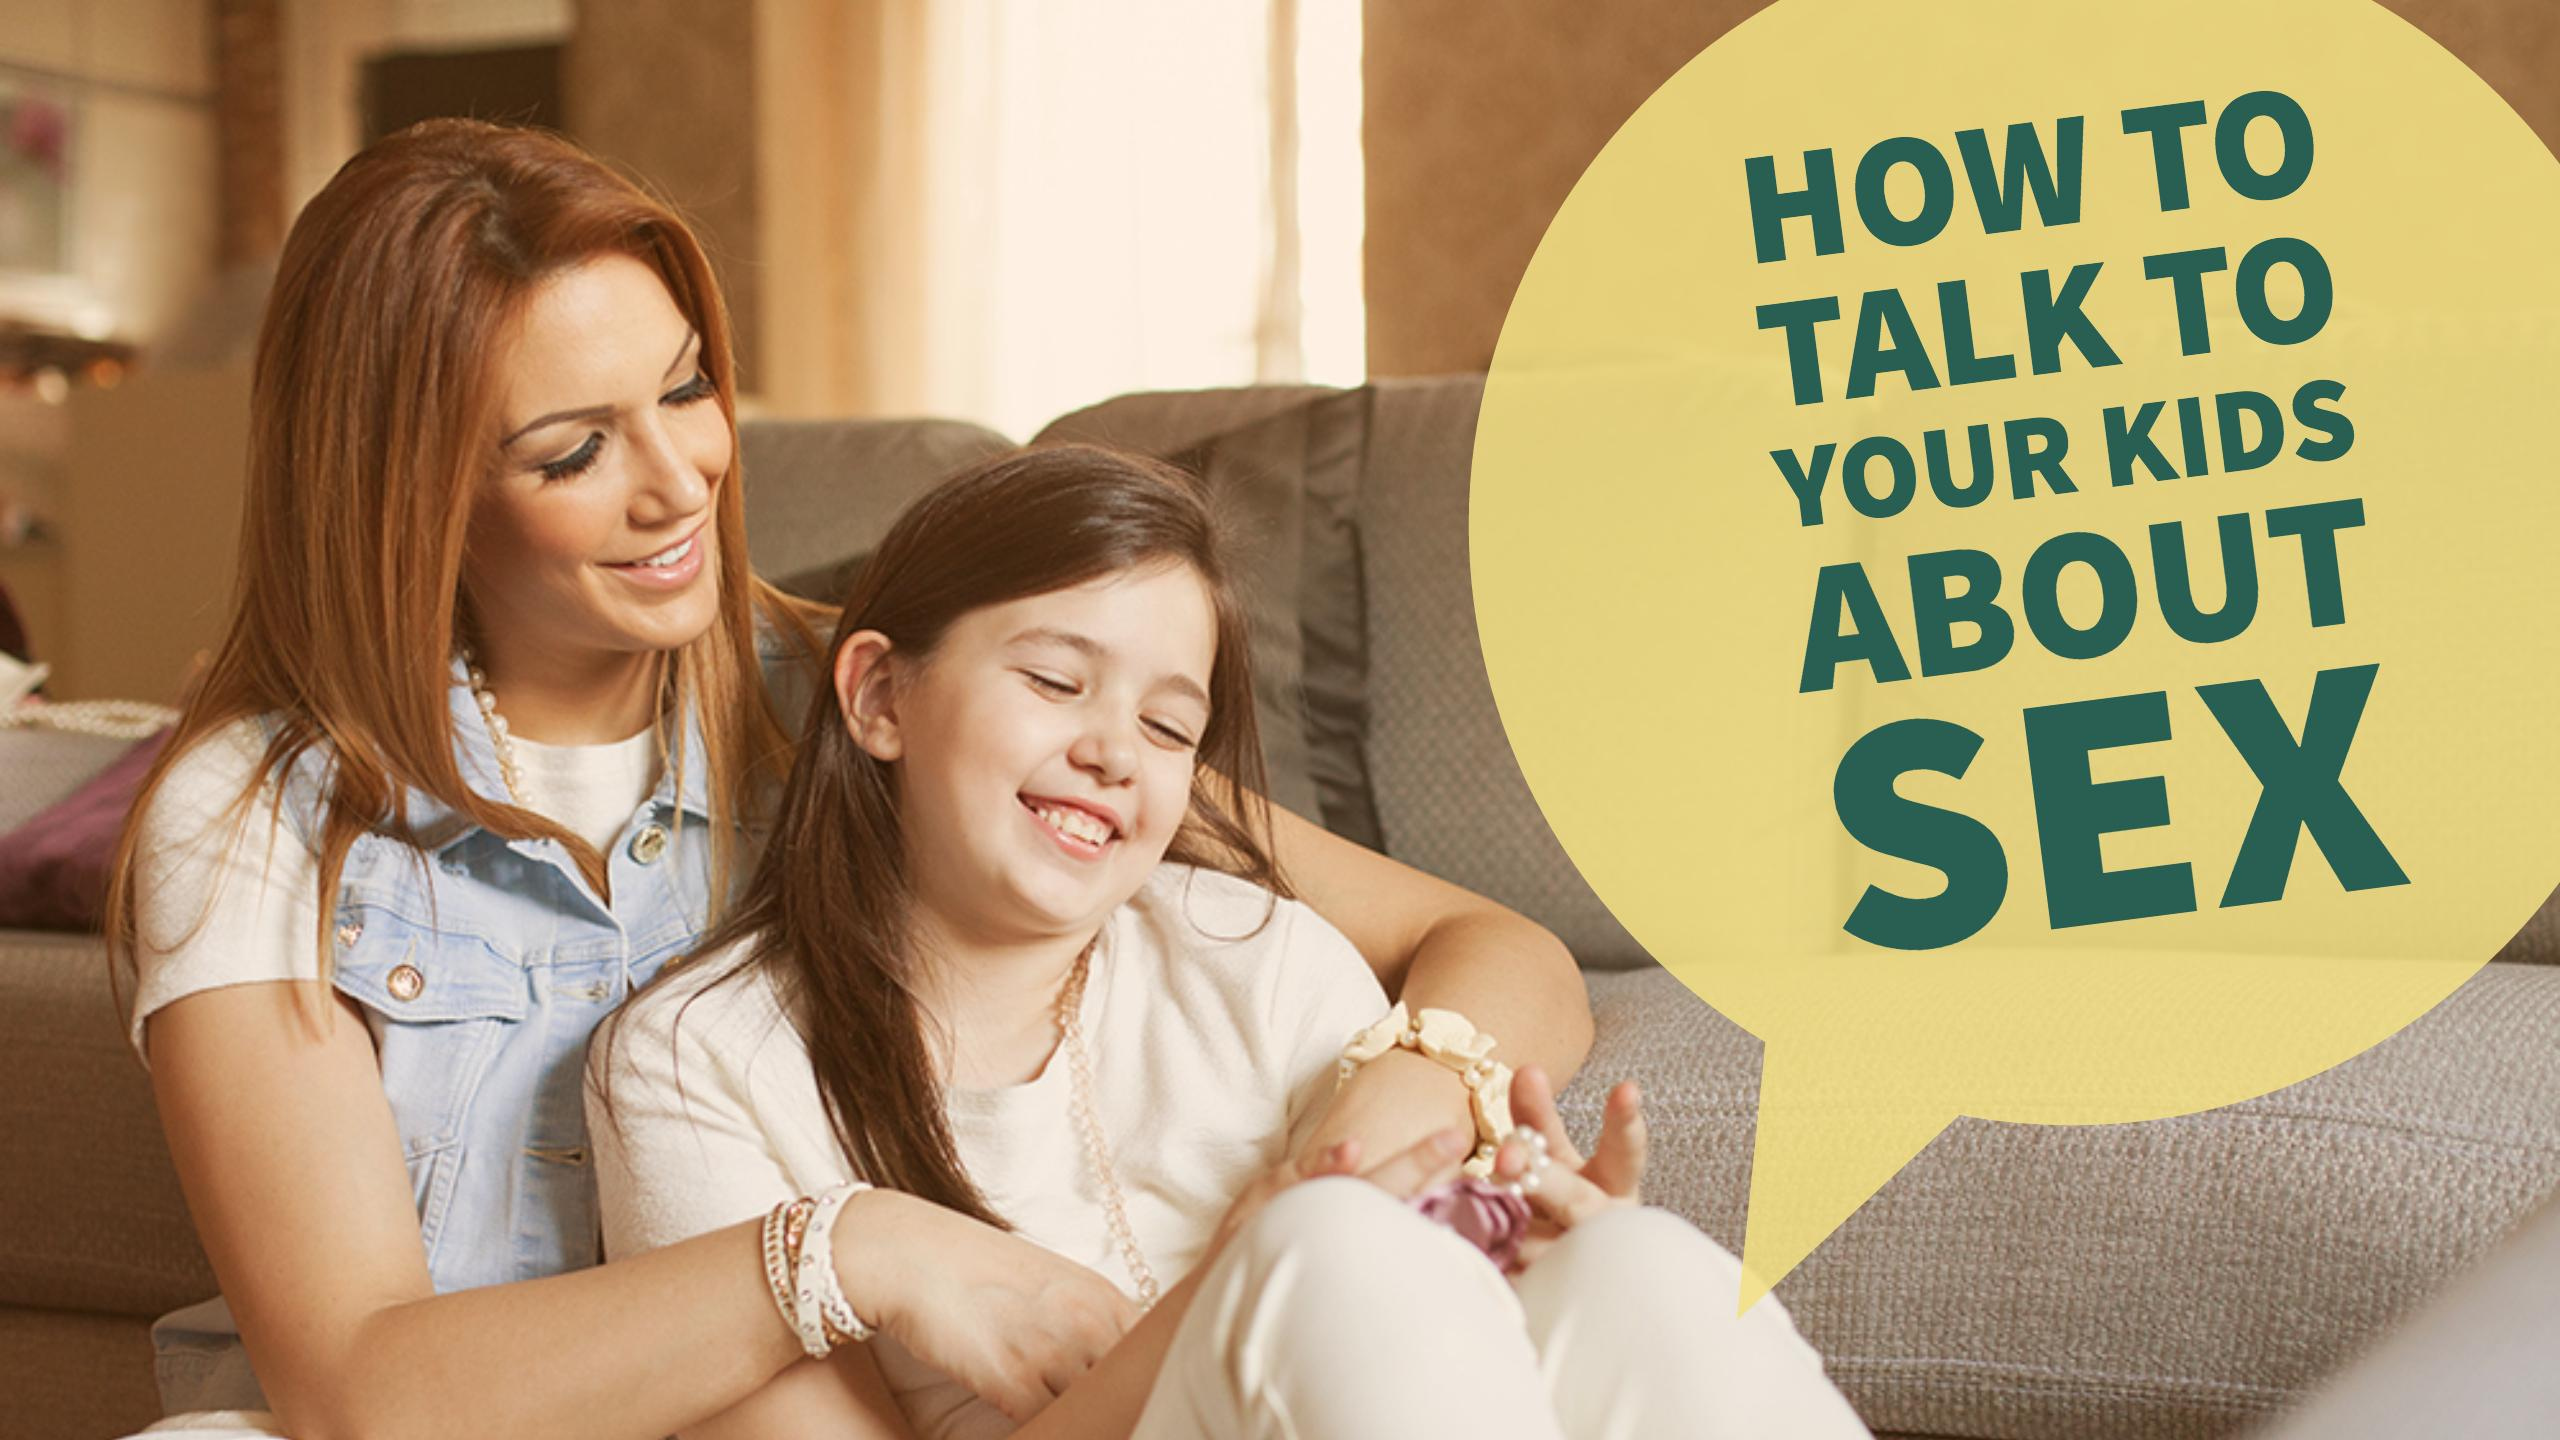 How to talk to your kids about sex galleries 82